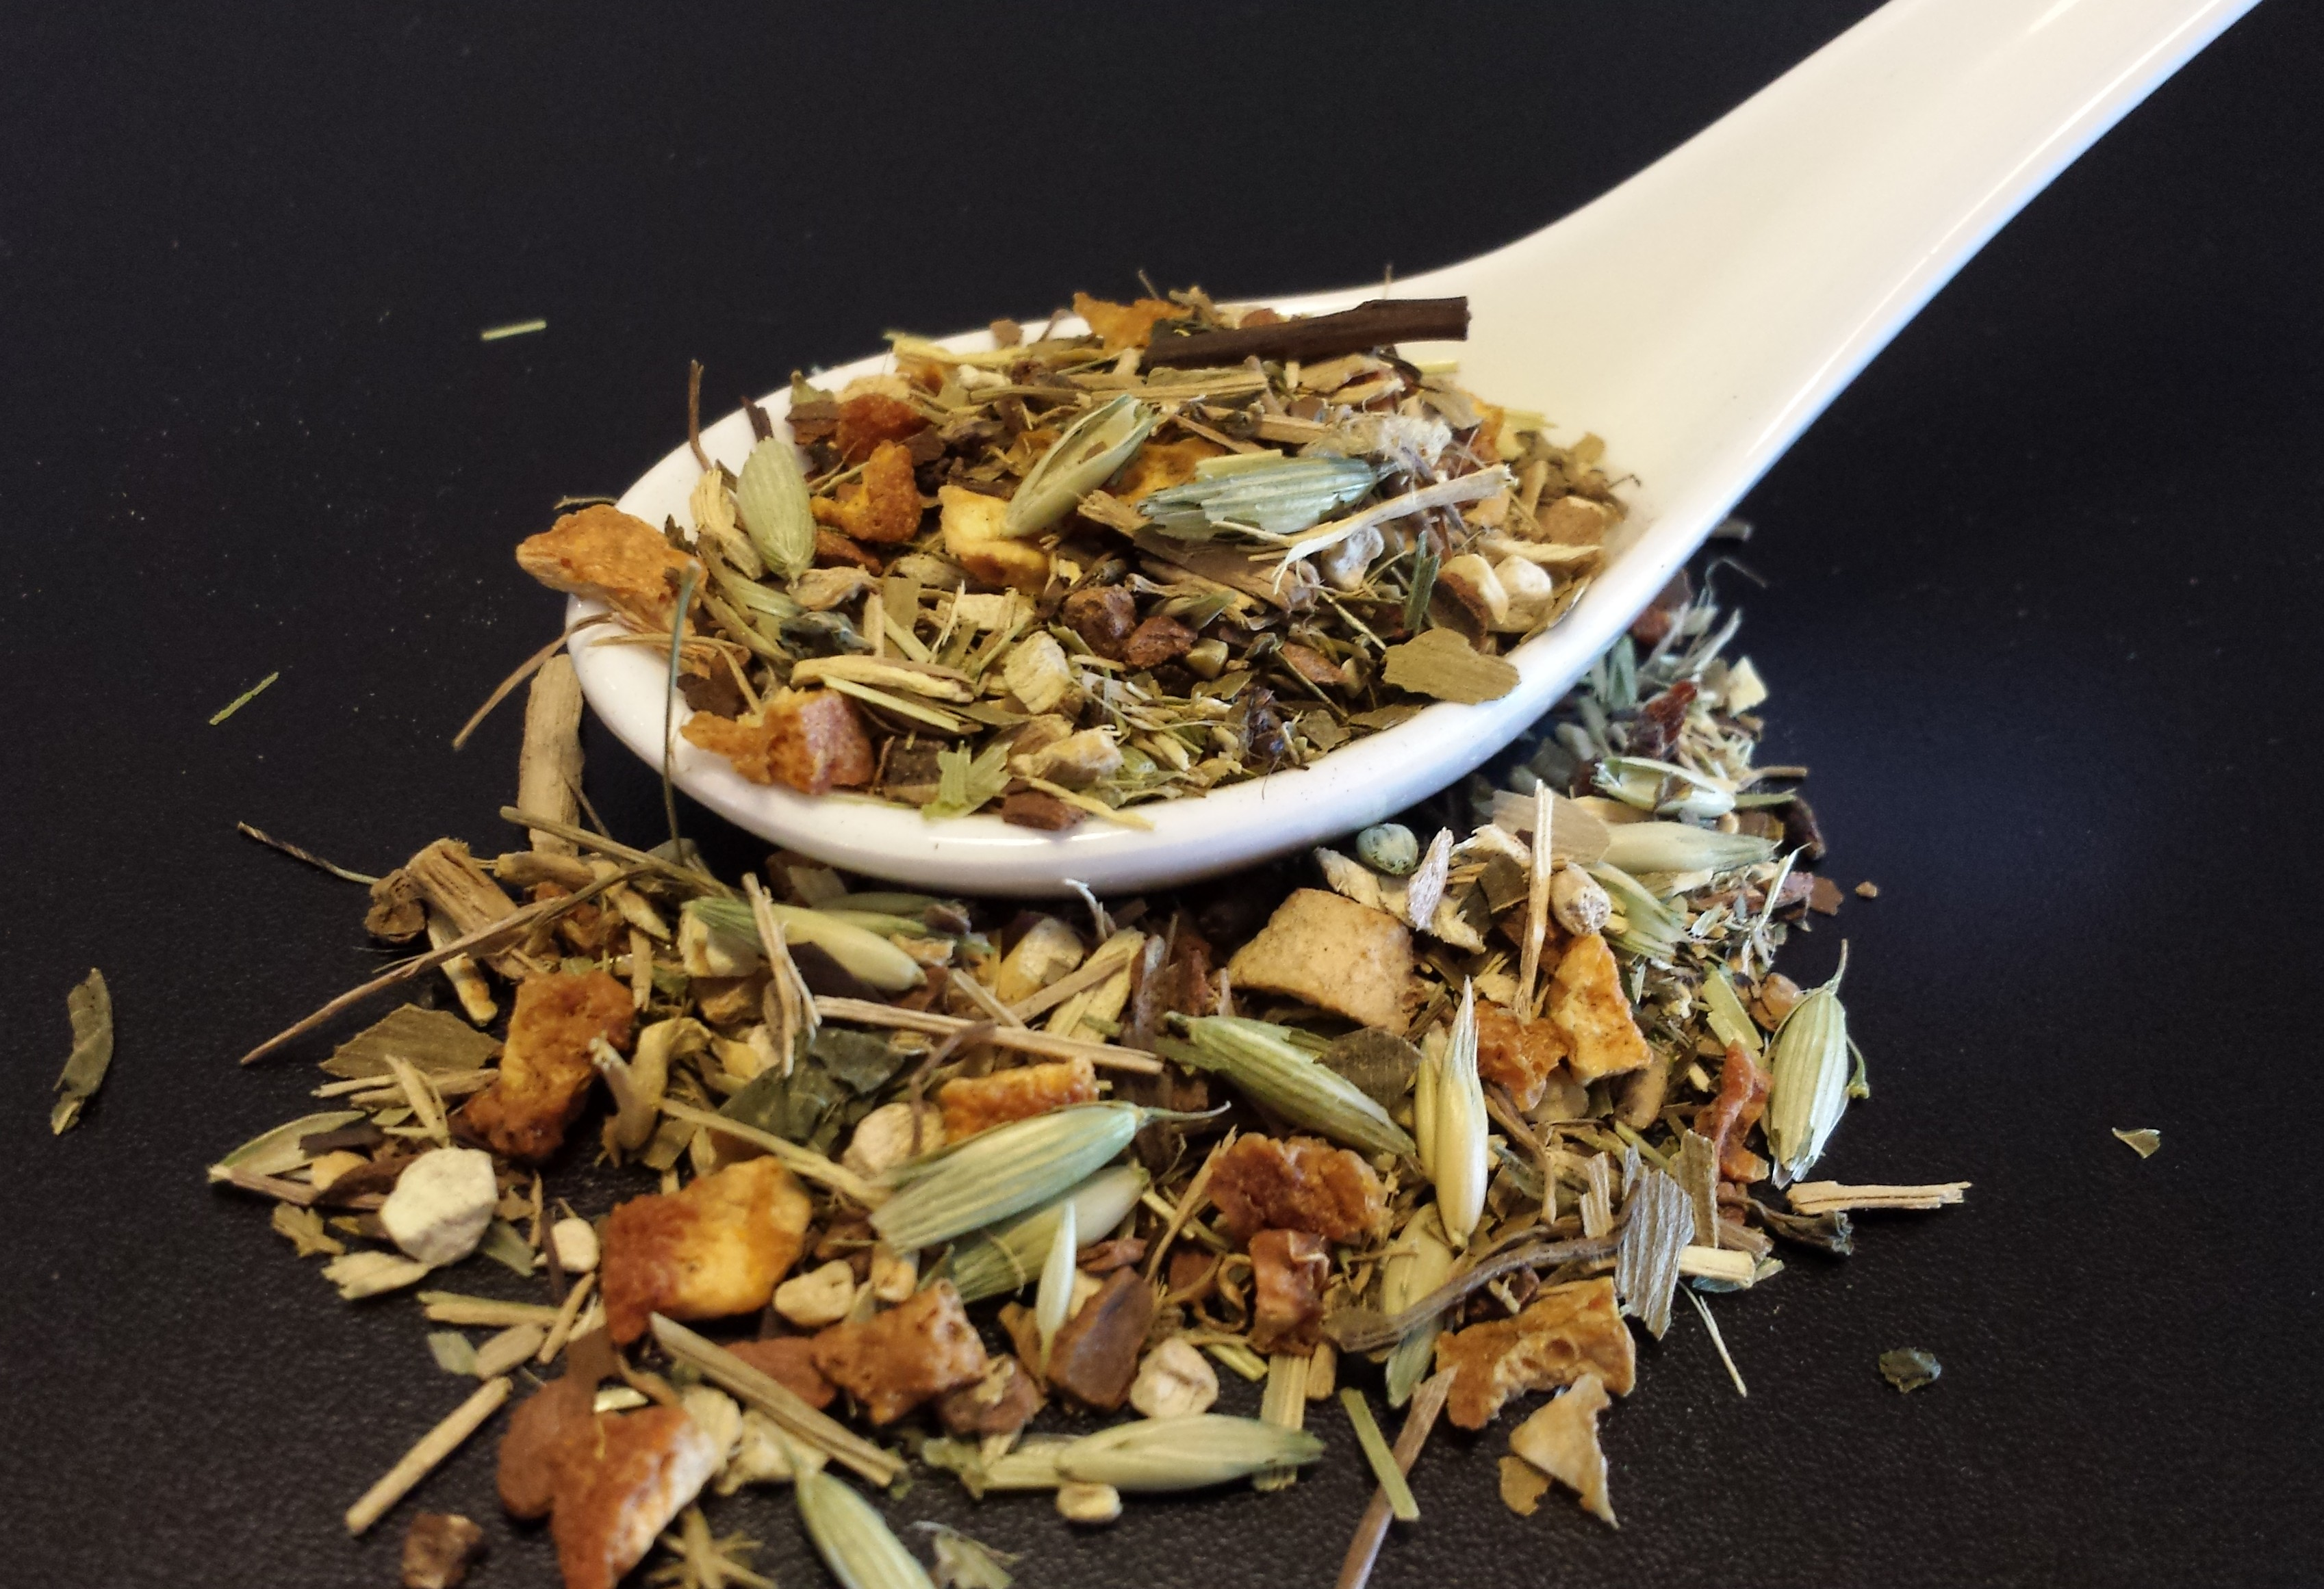 Energy Pop, energize your day, tisane, herbal tea, eleuthero root, cinnamon, orange peel, ashwagandha root, ginkgo biloba, gotu kola, nettle, oatstraw, oat tops, ginger root, blackberry leaf, blood orange, yerba mate, astragalus root